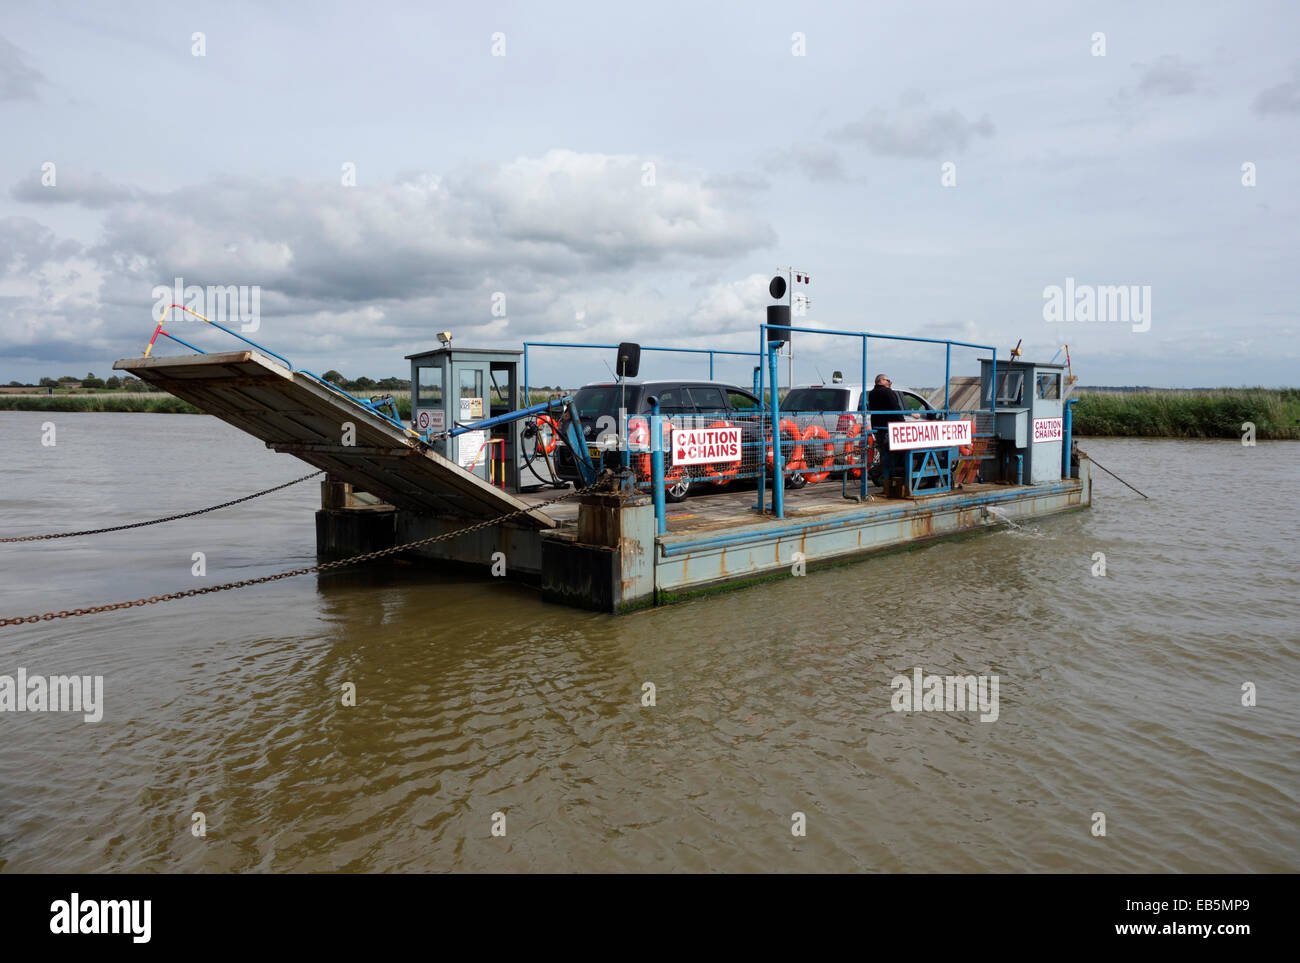 The Reedham car ferry - Stock Image